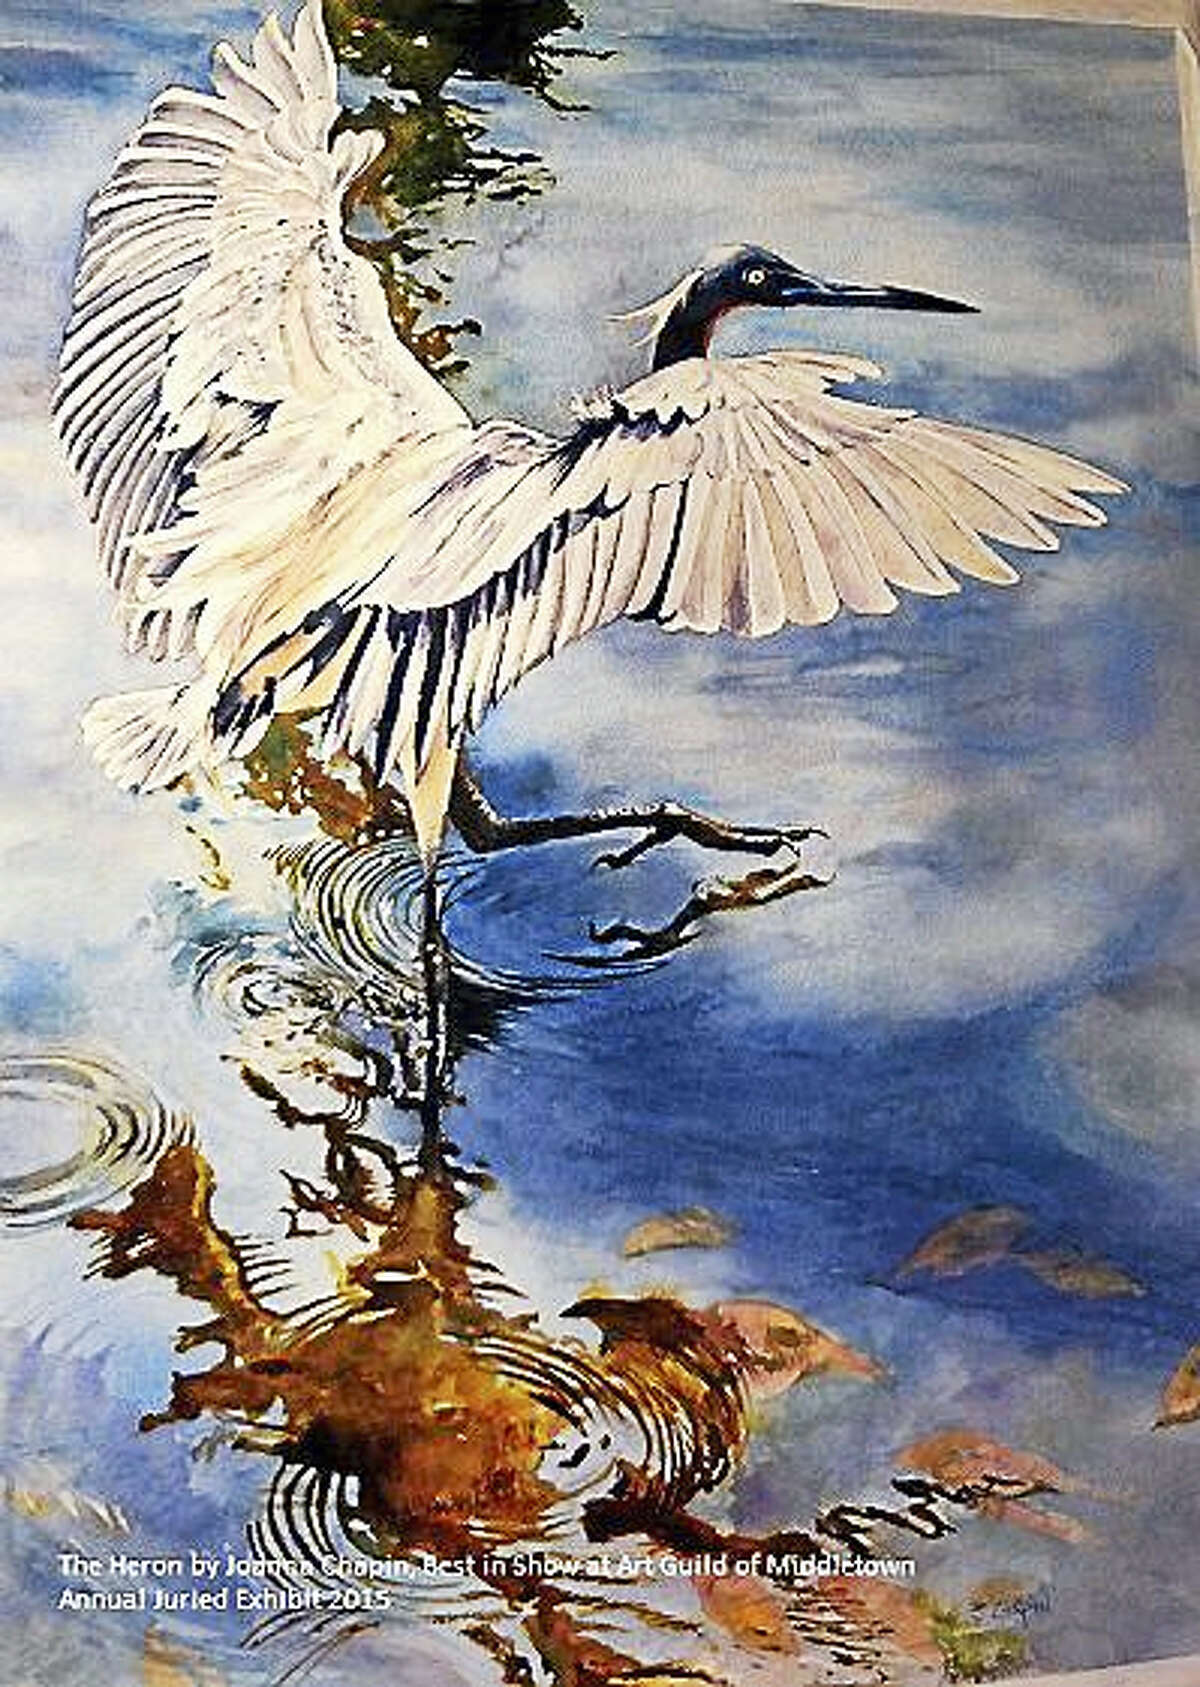 Contributed photo courtesy of the artistThe Heron, by Joanna Chapin, won best in show in 2015 in the Art Guild of Middletown's juried exhibition. This year's exhibition opens June 3; artists are invited to participate.